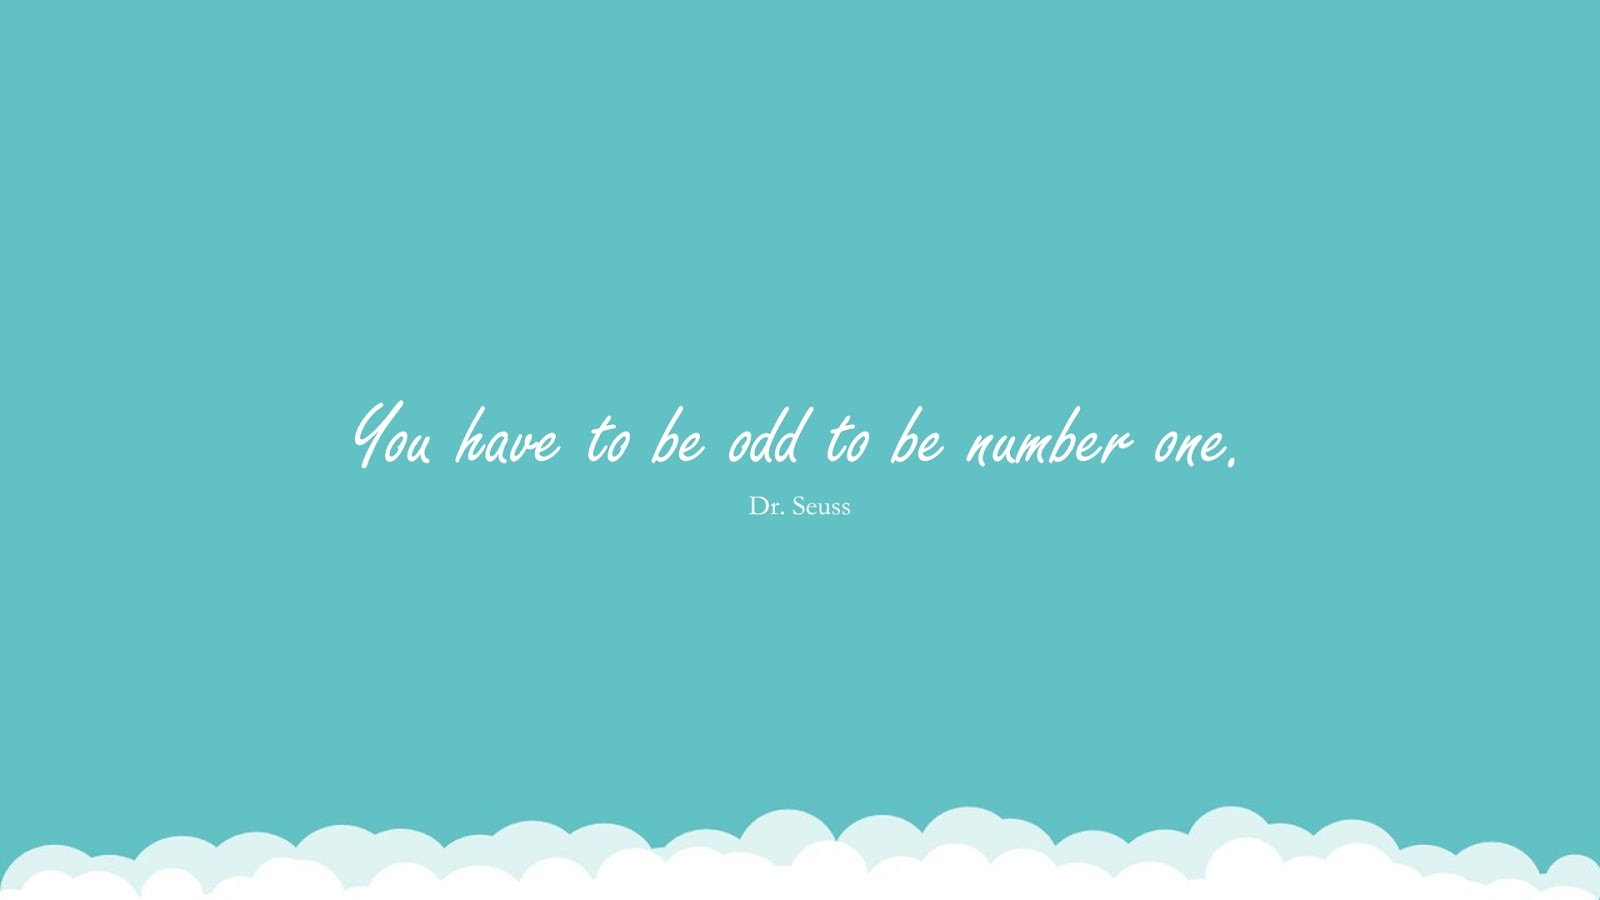 You have to be odd to be number one. (Dr. Seuss);  #InspirationalQuotes